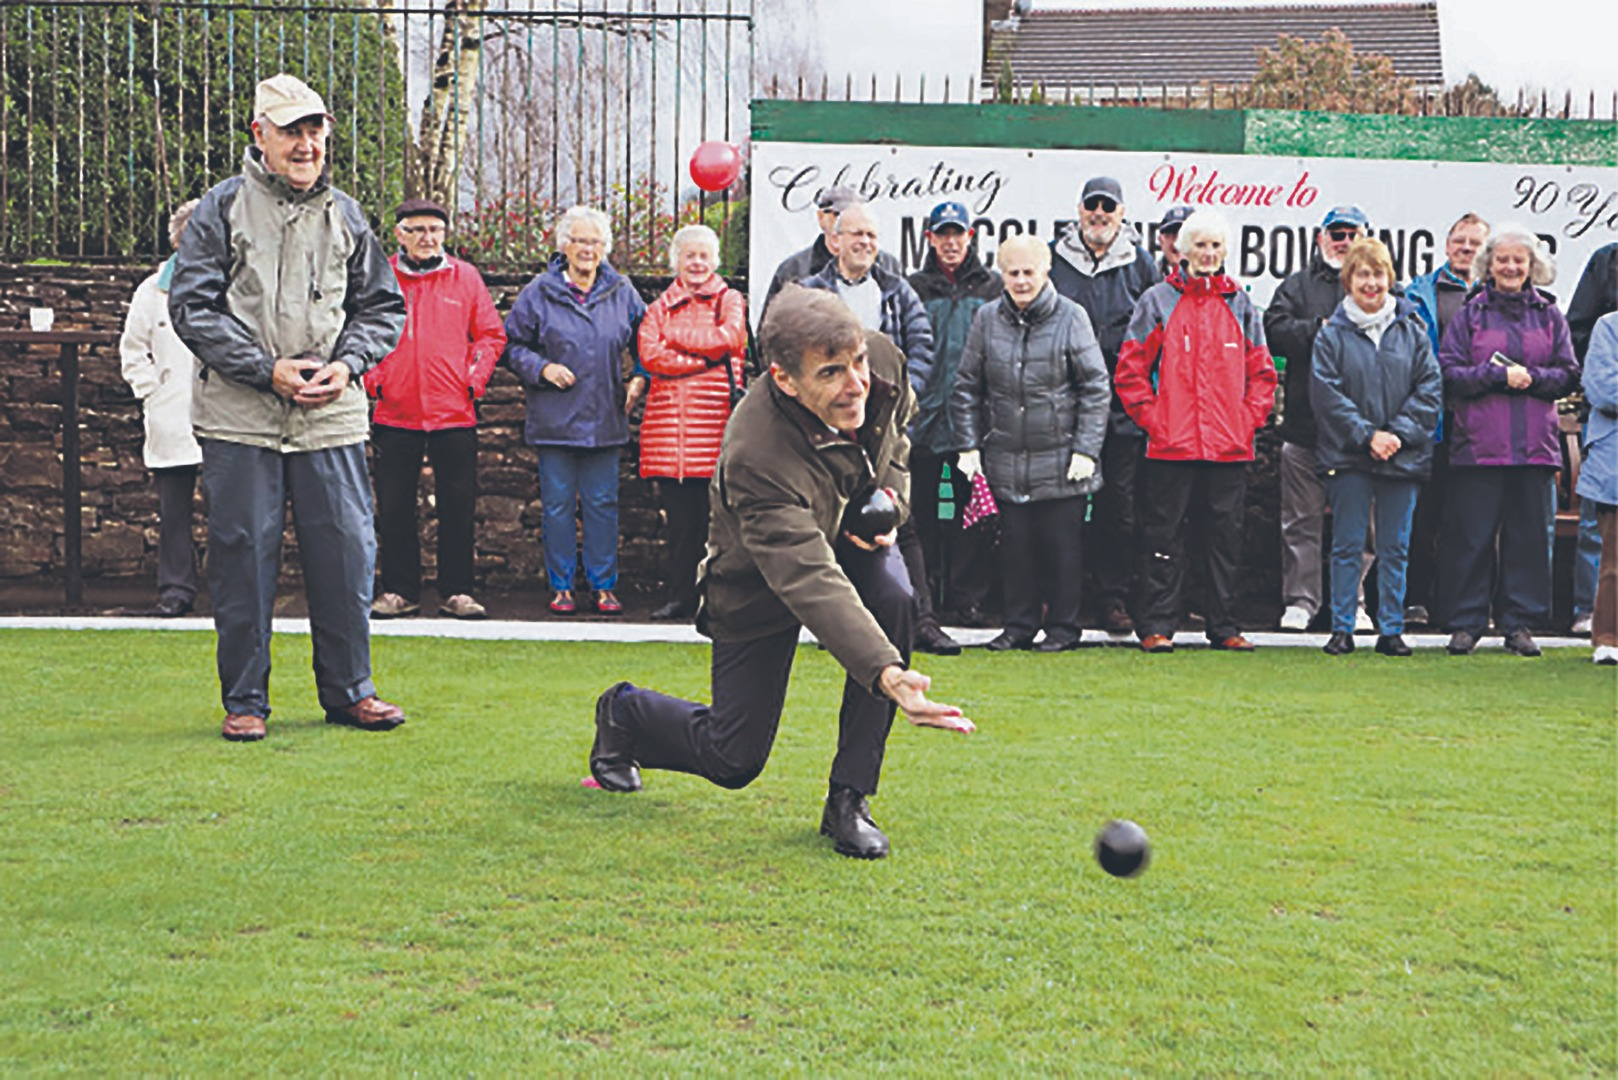 Club marks the start of its 90th season